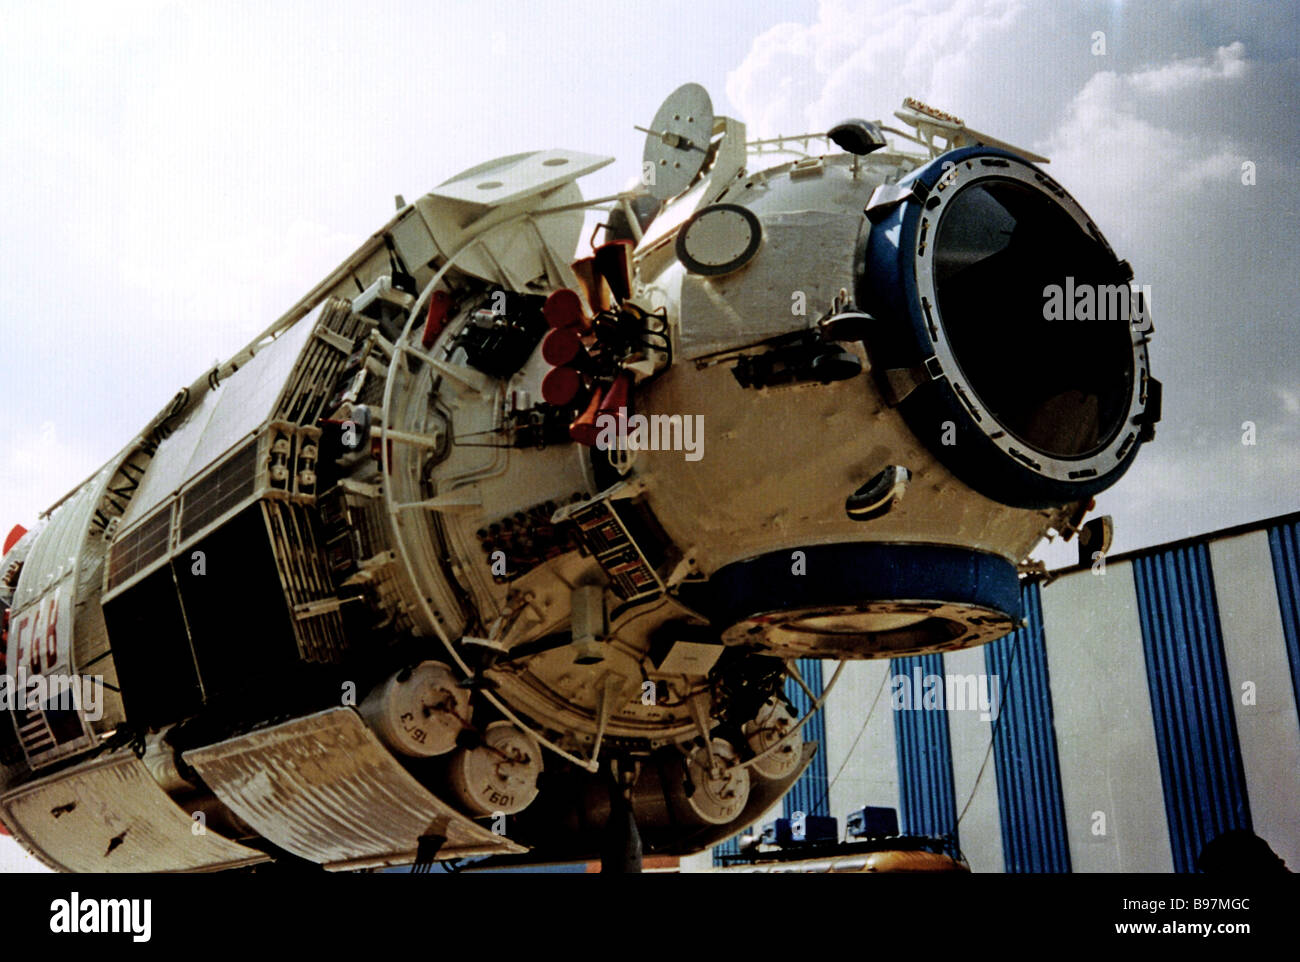 The ISS International Space Station first element Zarya functional cargo unit FGB developed and manufactured by - Stock Image